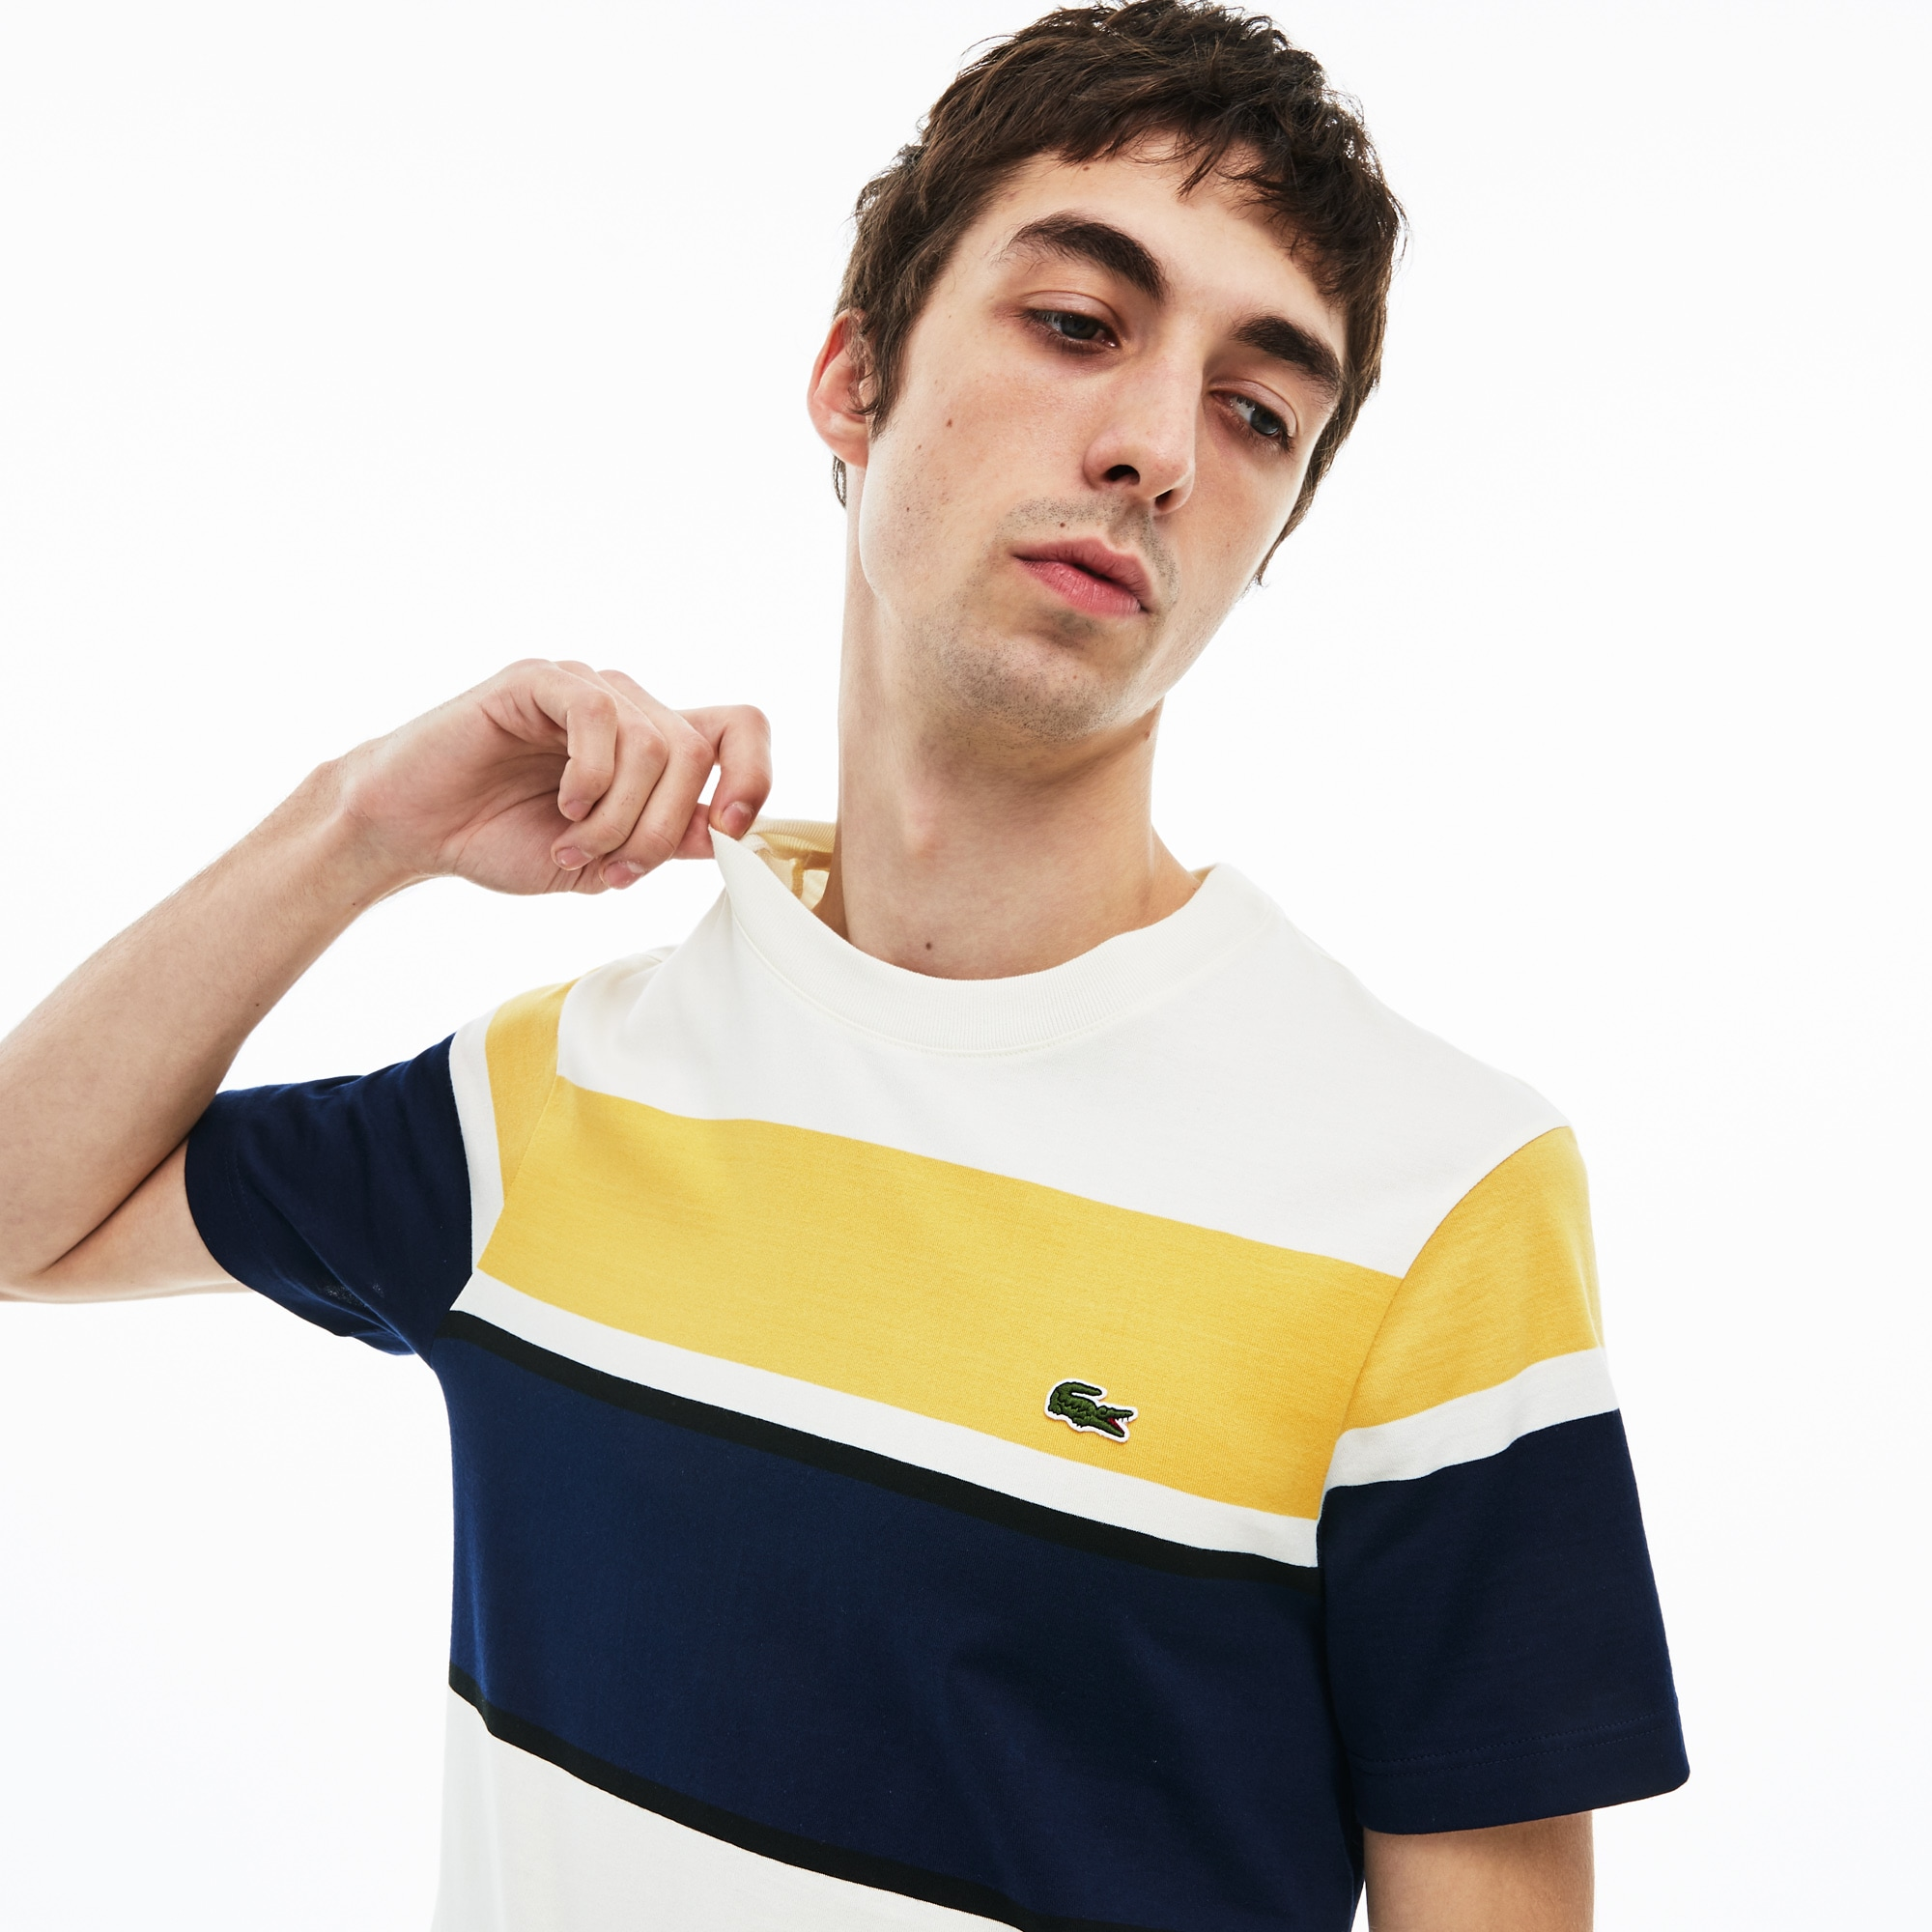 6917fa0ca5 Men's T Shirts | Lacoste T Shirts | LACOSTE